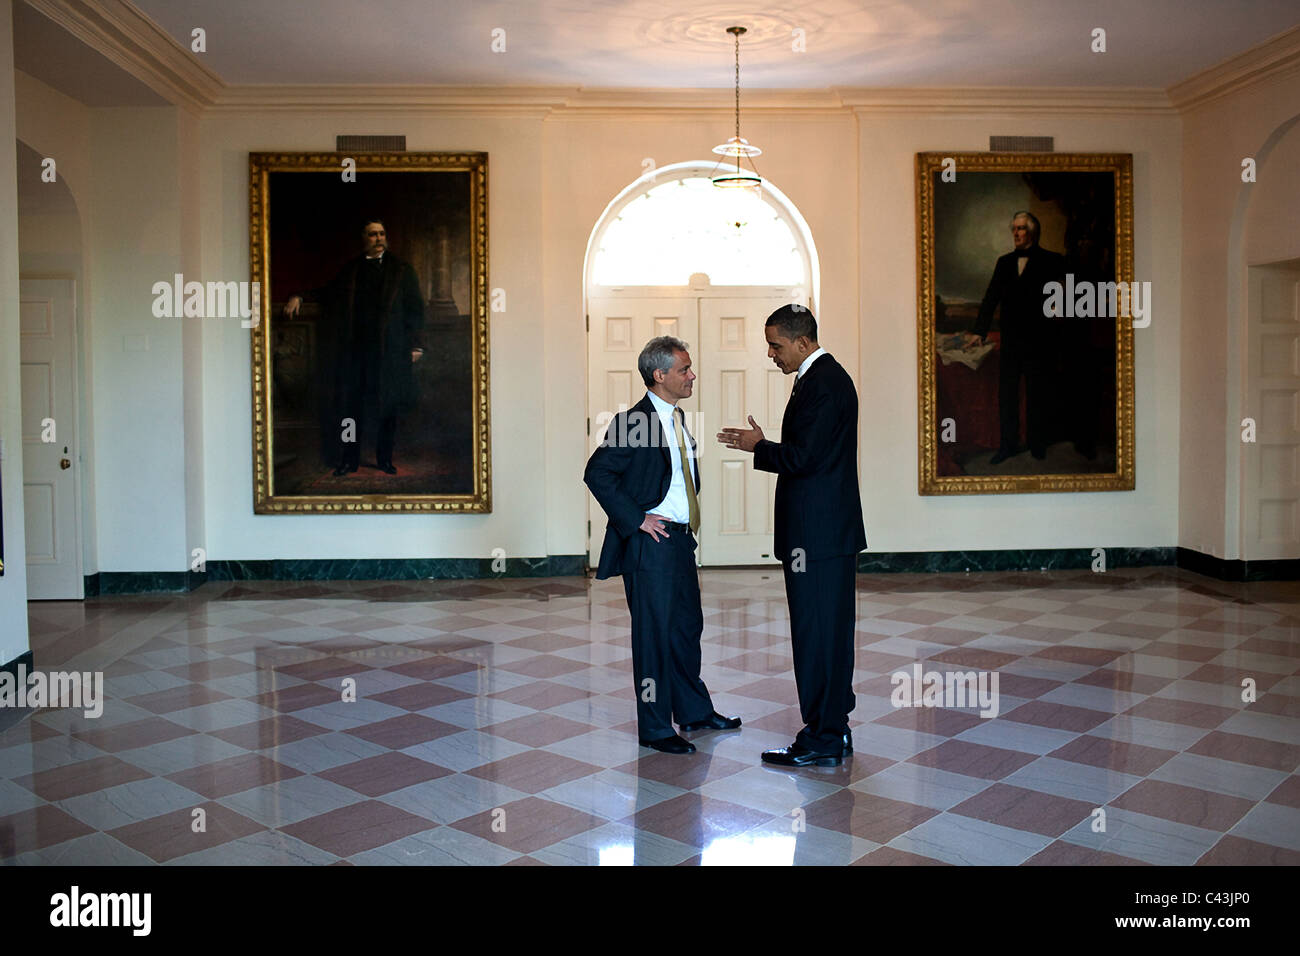 President Barack Obama talks with Chief of Staff Rahm Emanuel in the East Garden Room of the White House - Stock Image